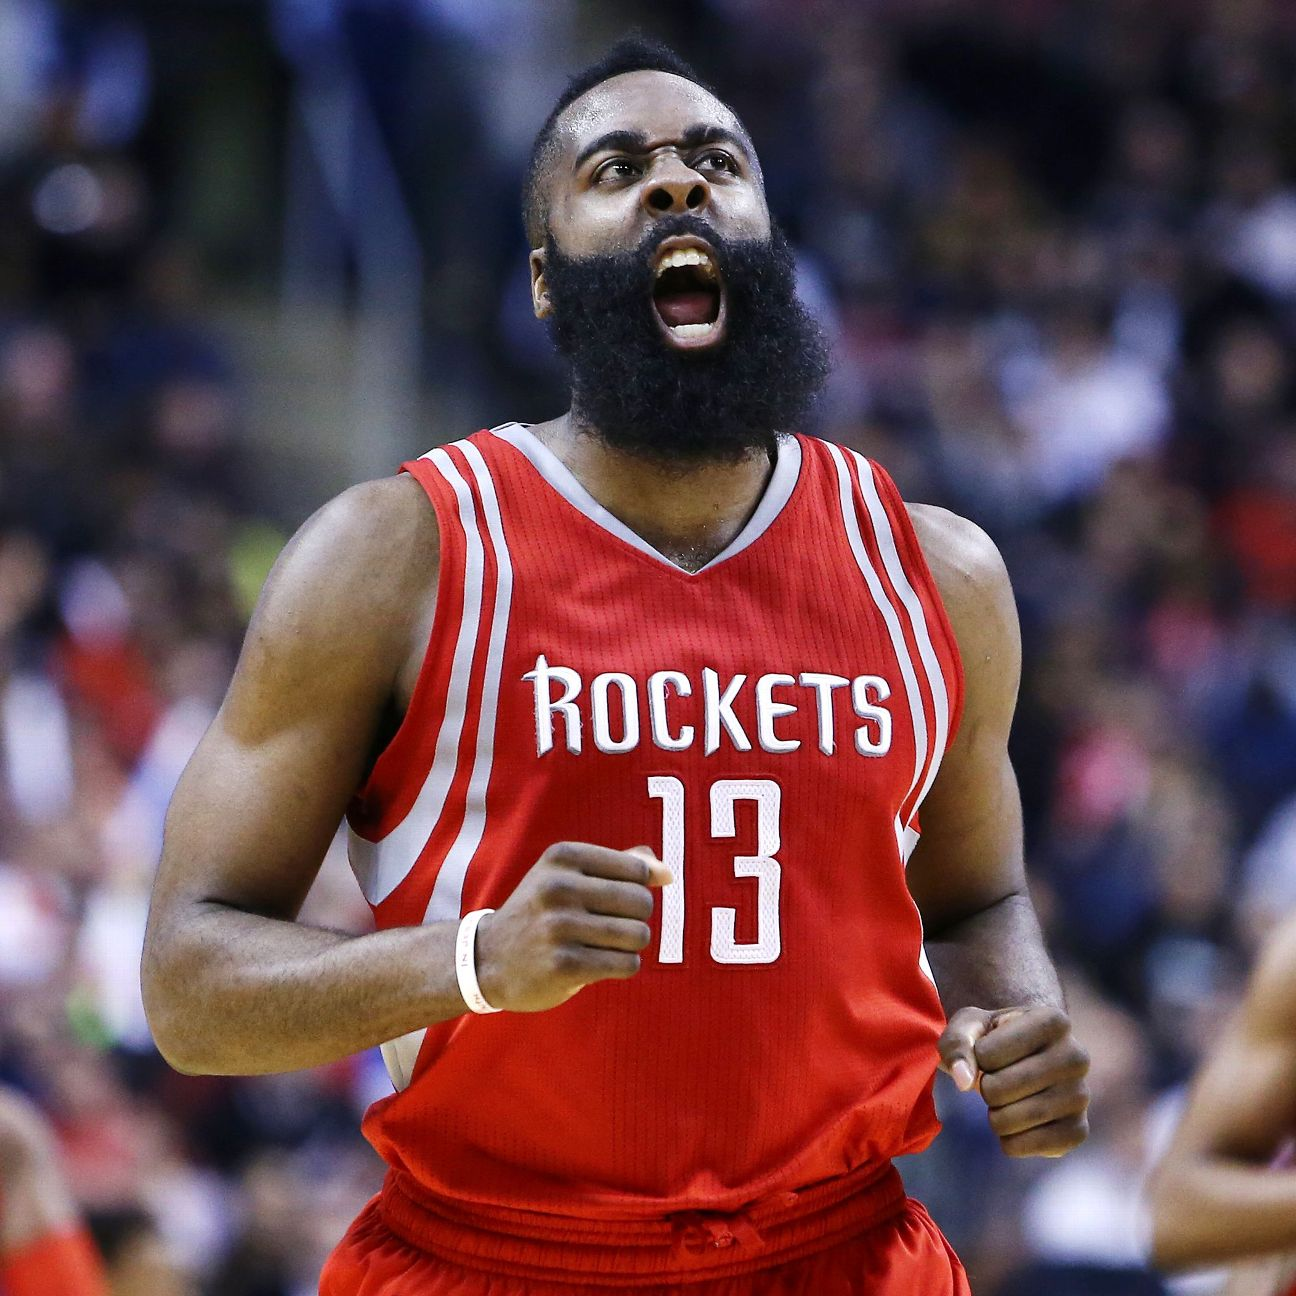 James Harden And Ashanti: She Is Currently Dating Houston Rockets Star James Harden